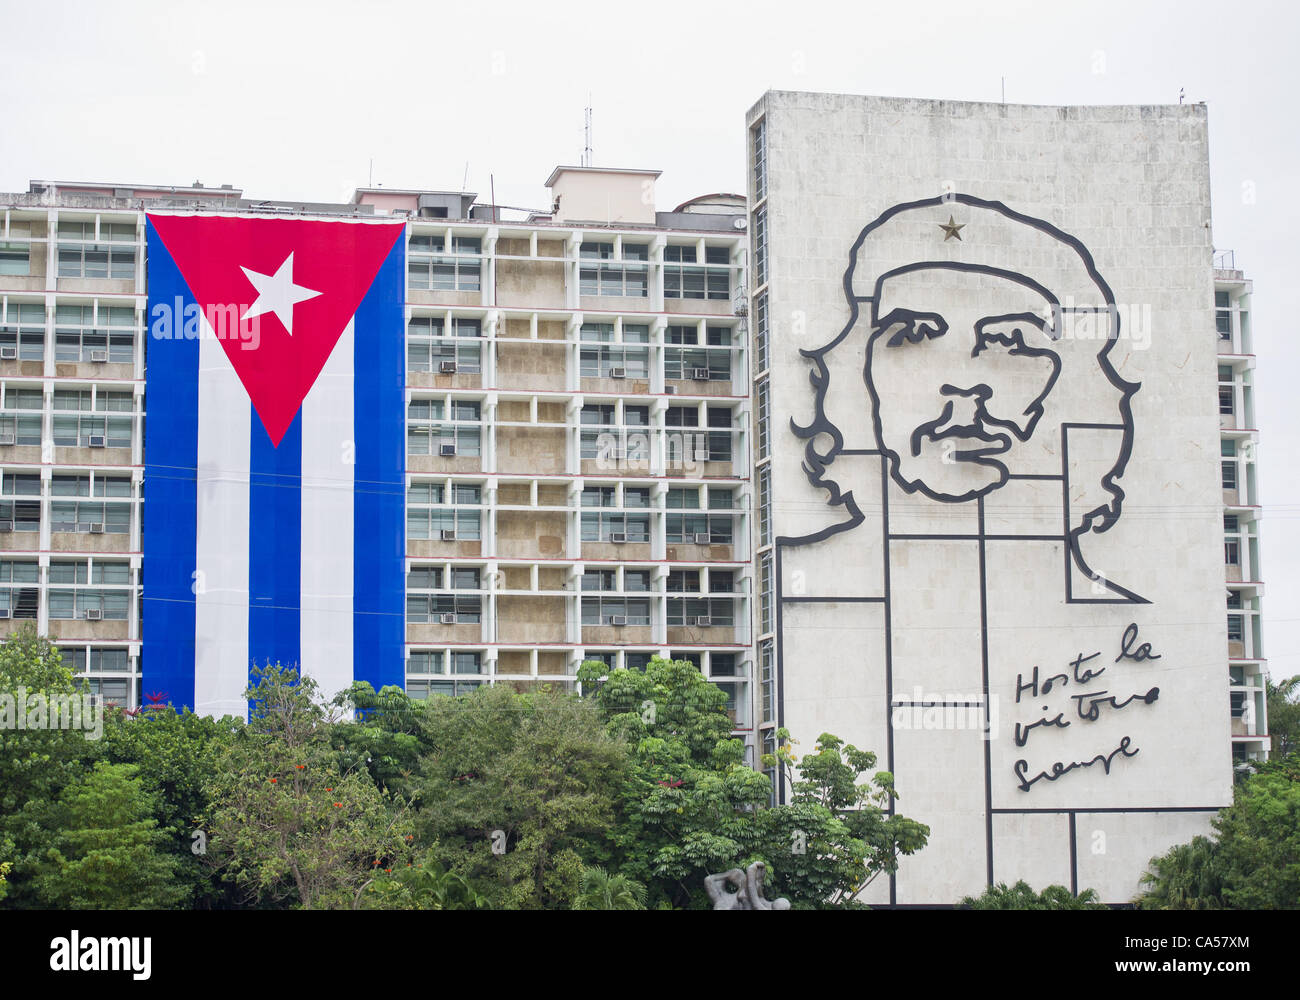 May 19, 2012 - Havana, U.S. - Revered revolutionary hero Che GuevaraÕs image adorns the side of a government - Stock Image